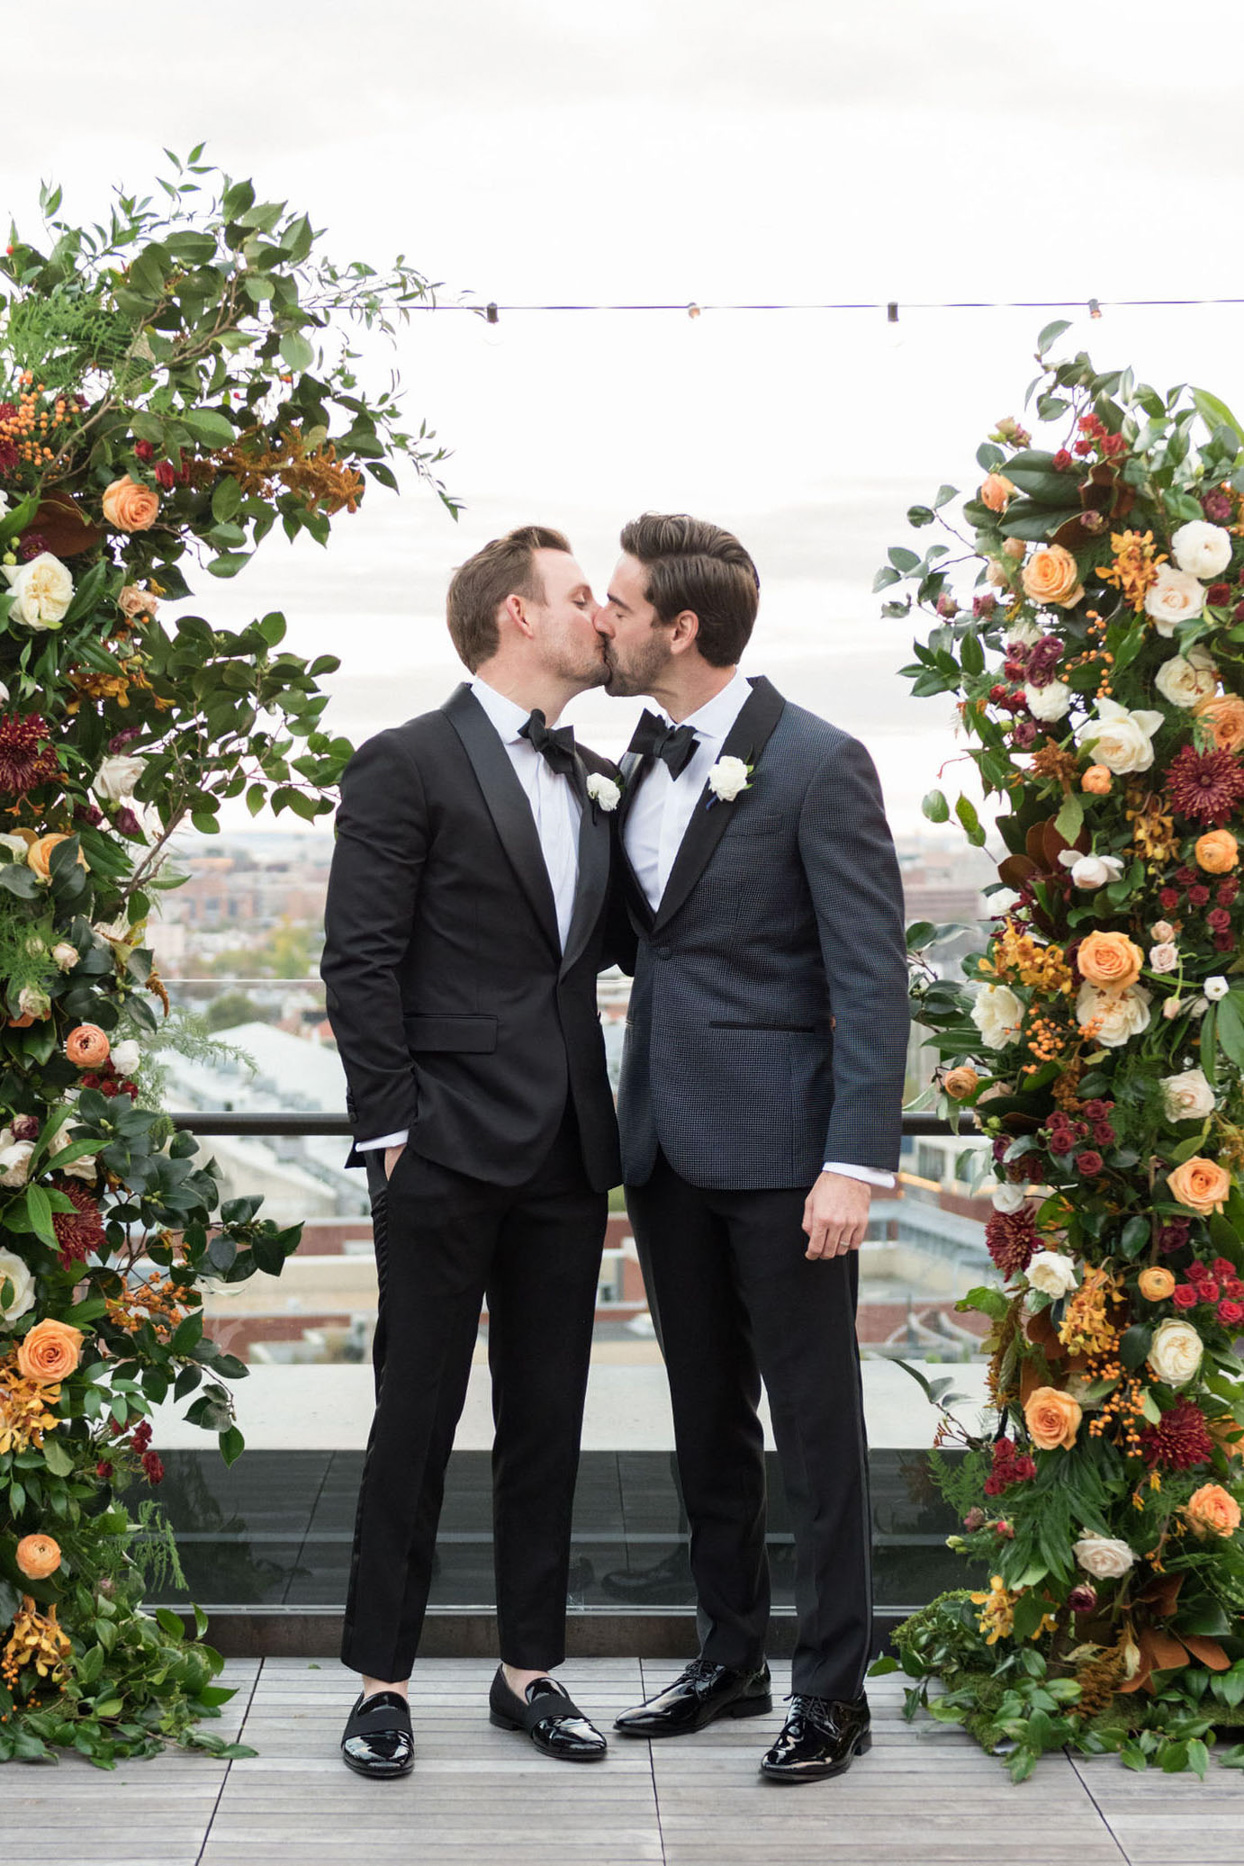 grooms kissing at rooftop wedding location under floral arch